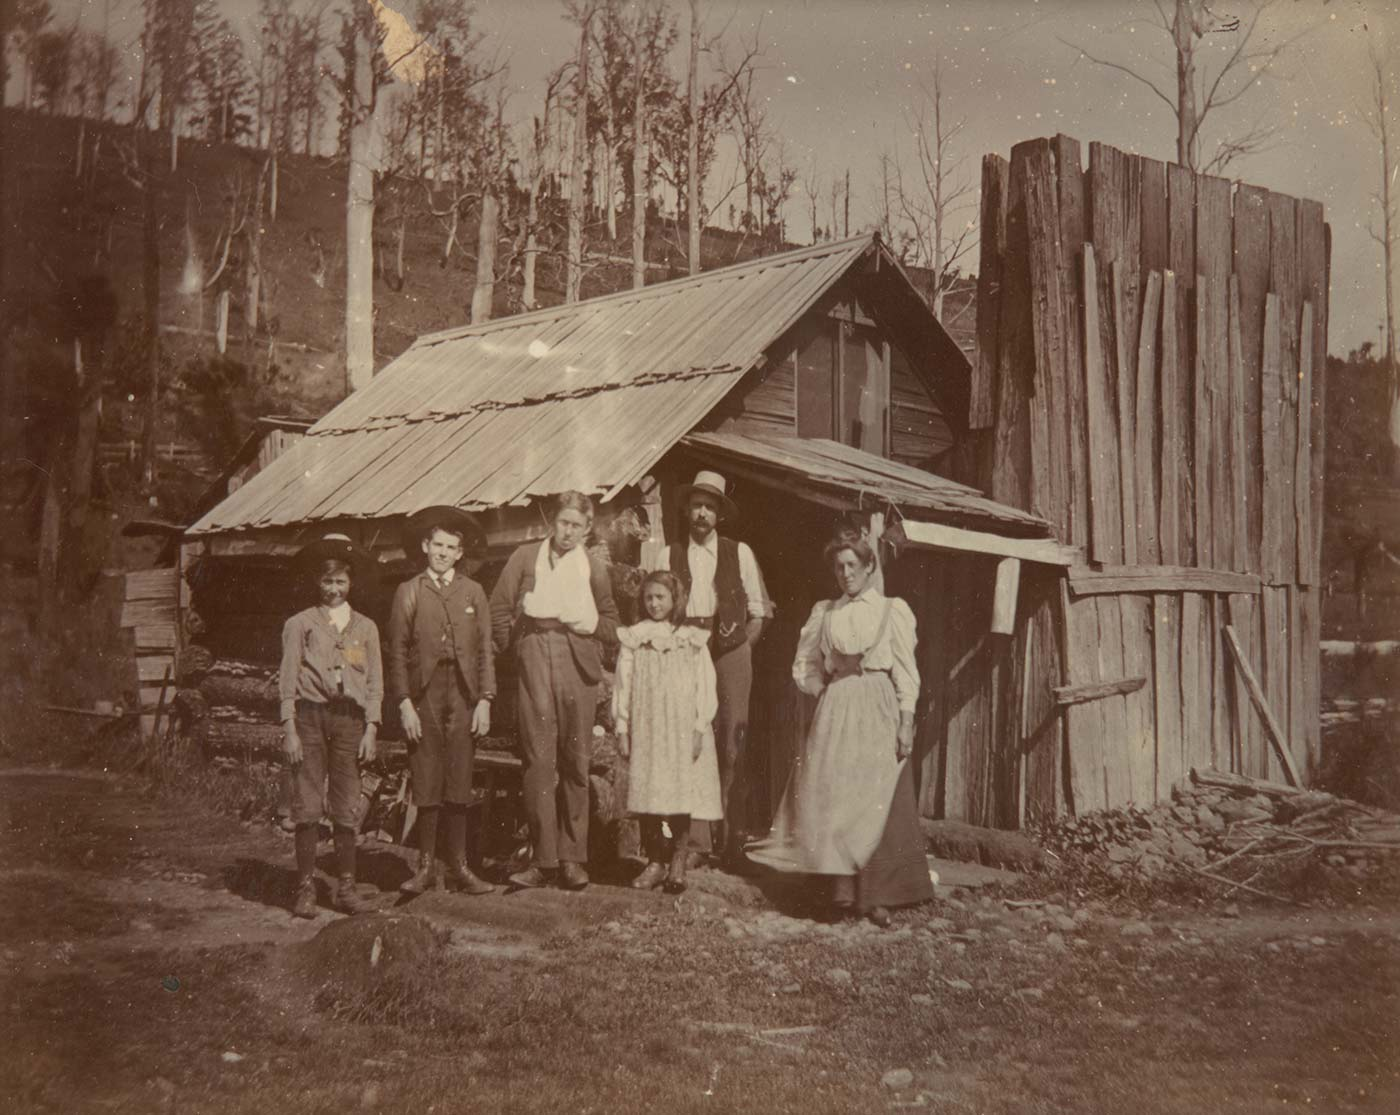 A black and white family phoograph in front of a small wooden house/ hut at the base of a slight hill dotted with leafless tall trees. In the image, there are three young boys standing on the left, a young girl in the centre just in front of the father figure, and finally on the right is the mother figure leaning against the hut. The tallest of the young boys standing near the centre of the shot, is wearing a sling around his left arm. This photograph has been developed for Plate 2 in Box 9 and is the same as photo 9 only in focus and photo 10. - click to view larger image